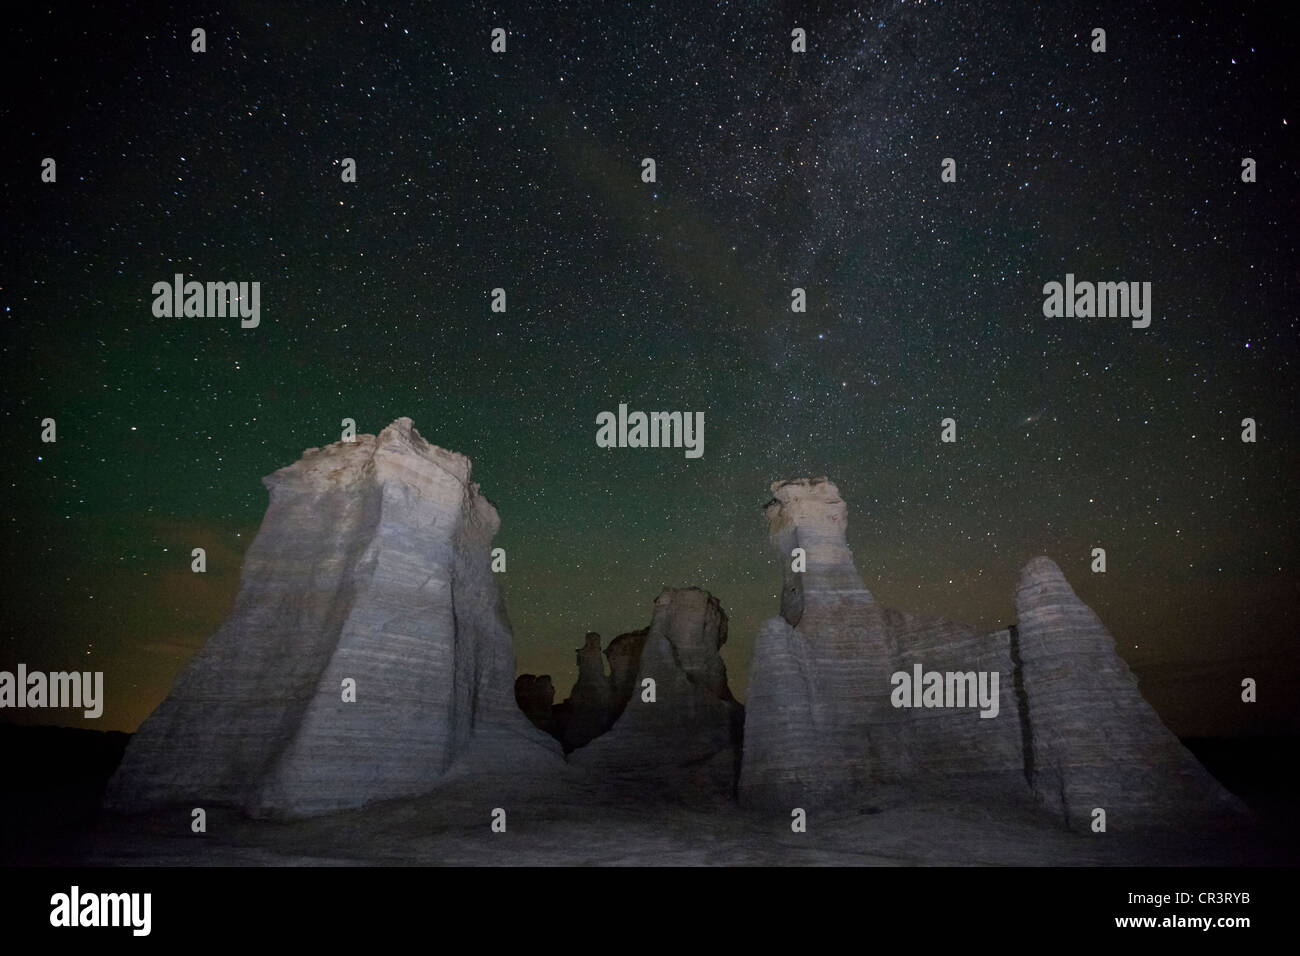 Kansas gove county grinnell - Rock Formations At Night With Milky Way Monument Rocks Chalk Pyramids Gove County Kansas Usa